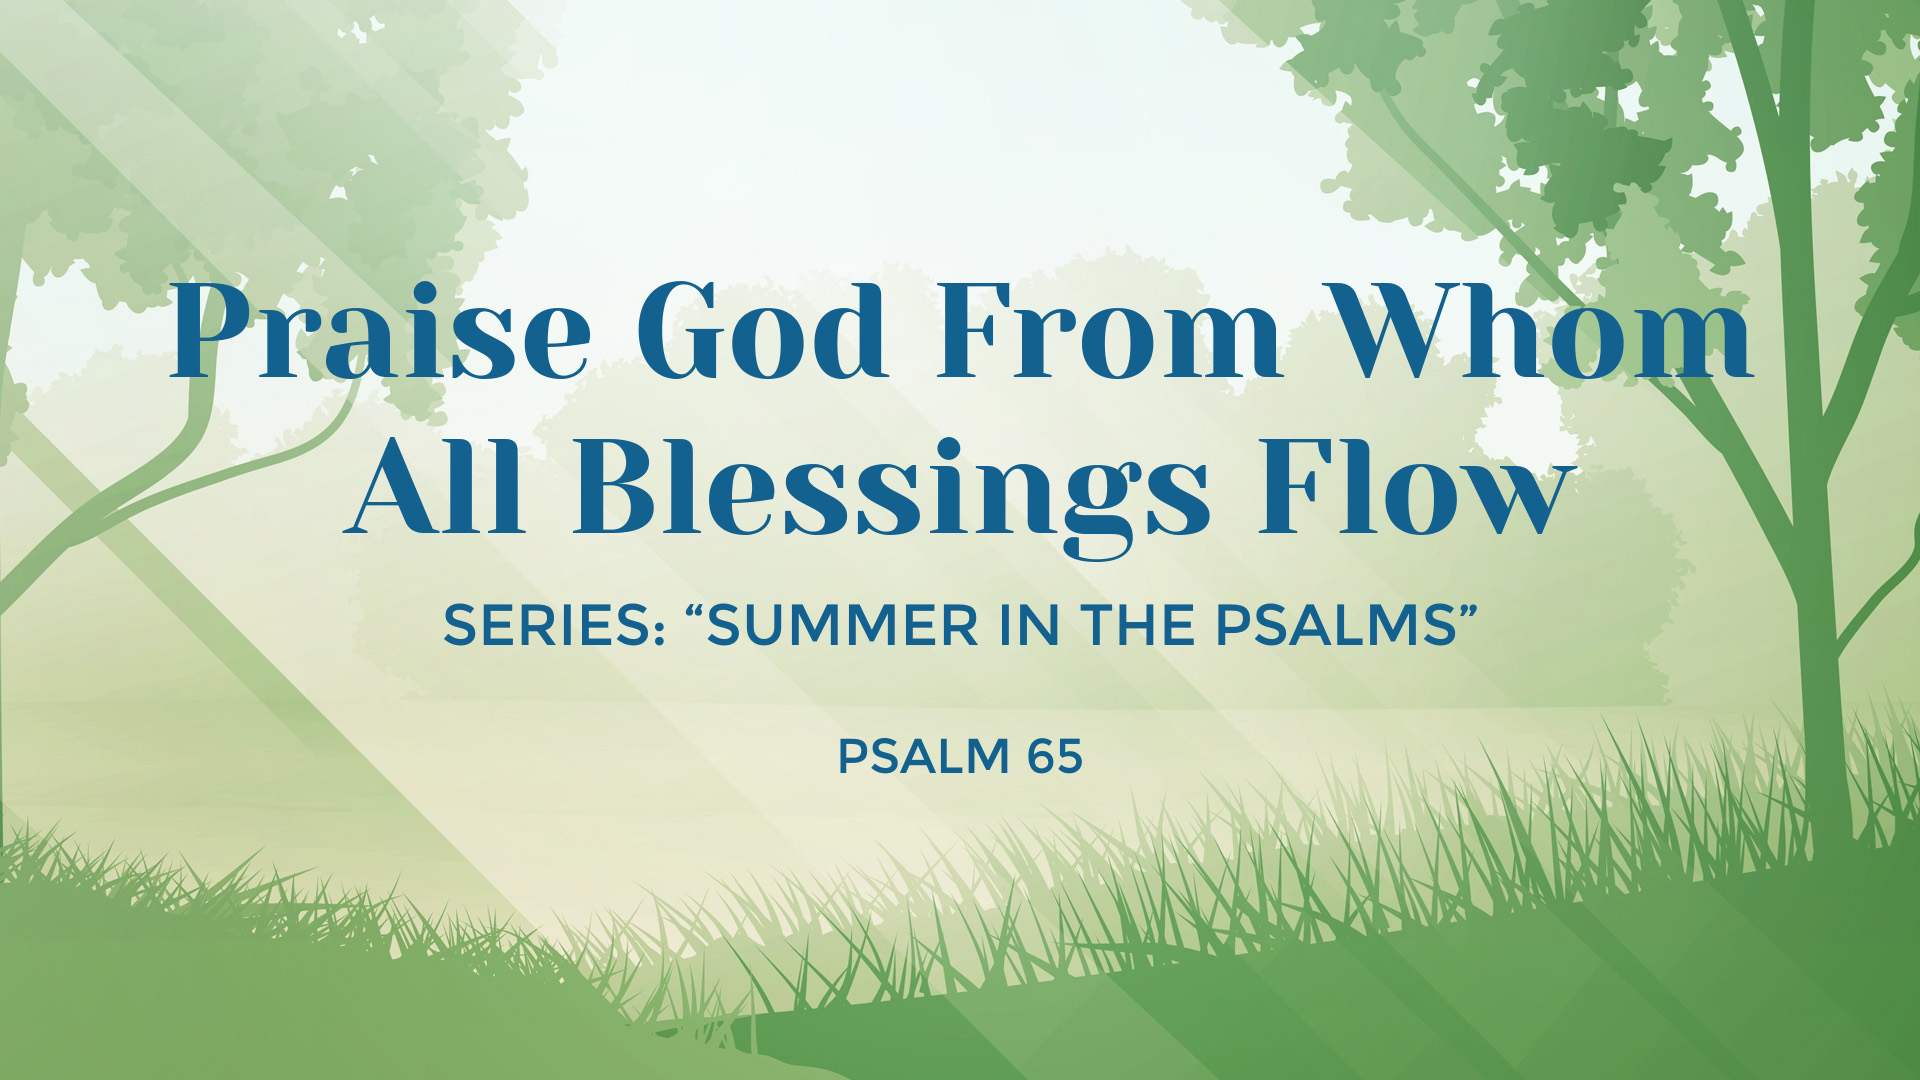 Image for the sermon Praise God From Whom All Blessings Flow